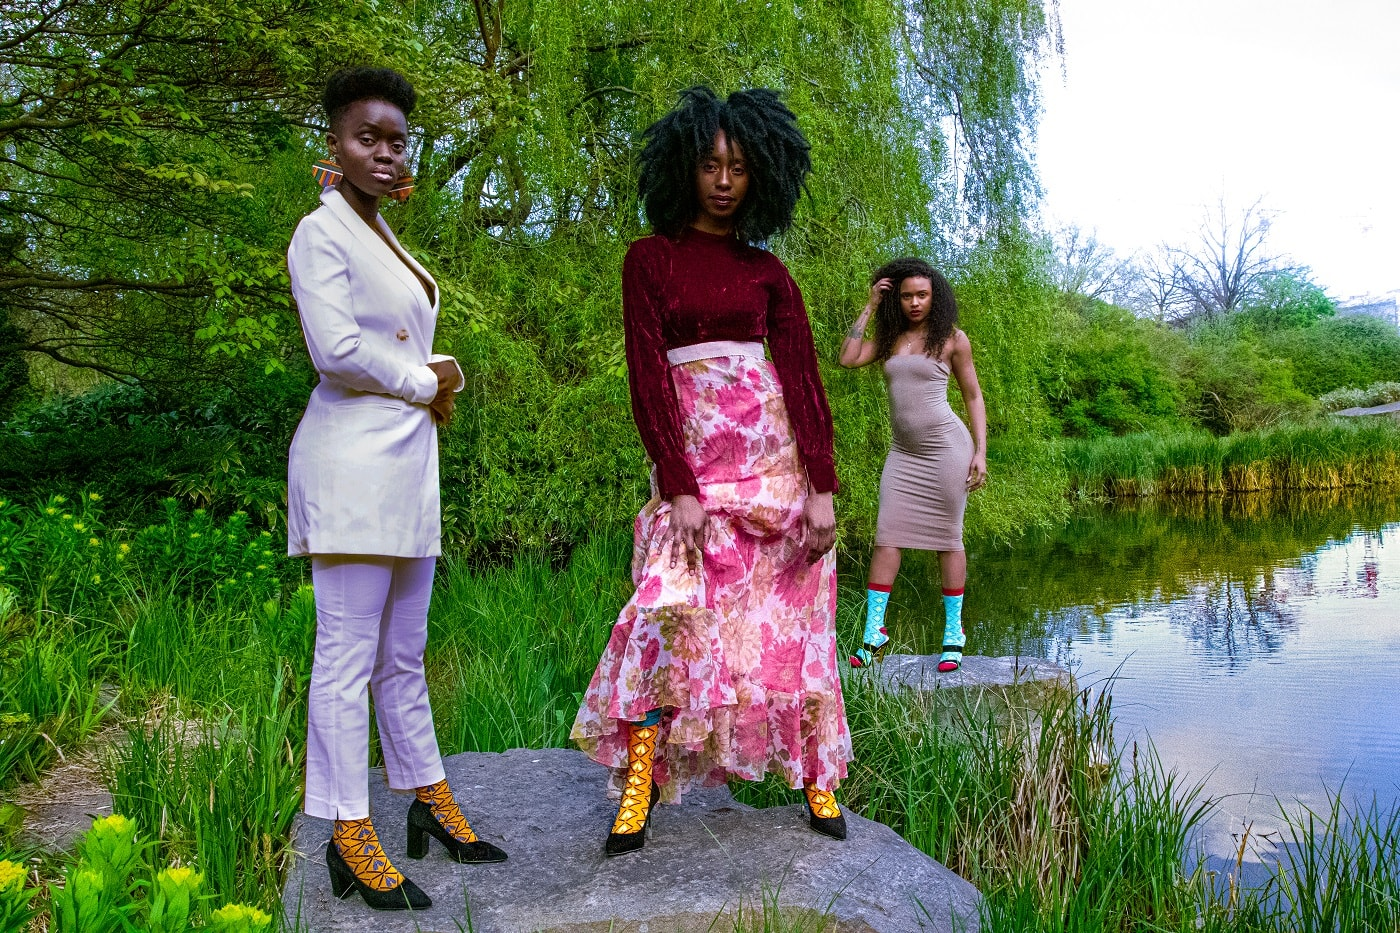 Three black women in colorful dresses and african bamboo socks standing by a lake